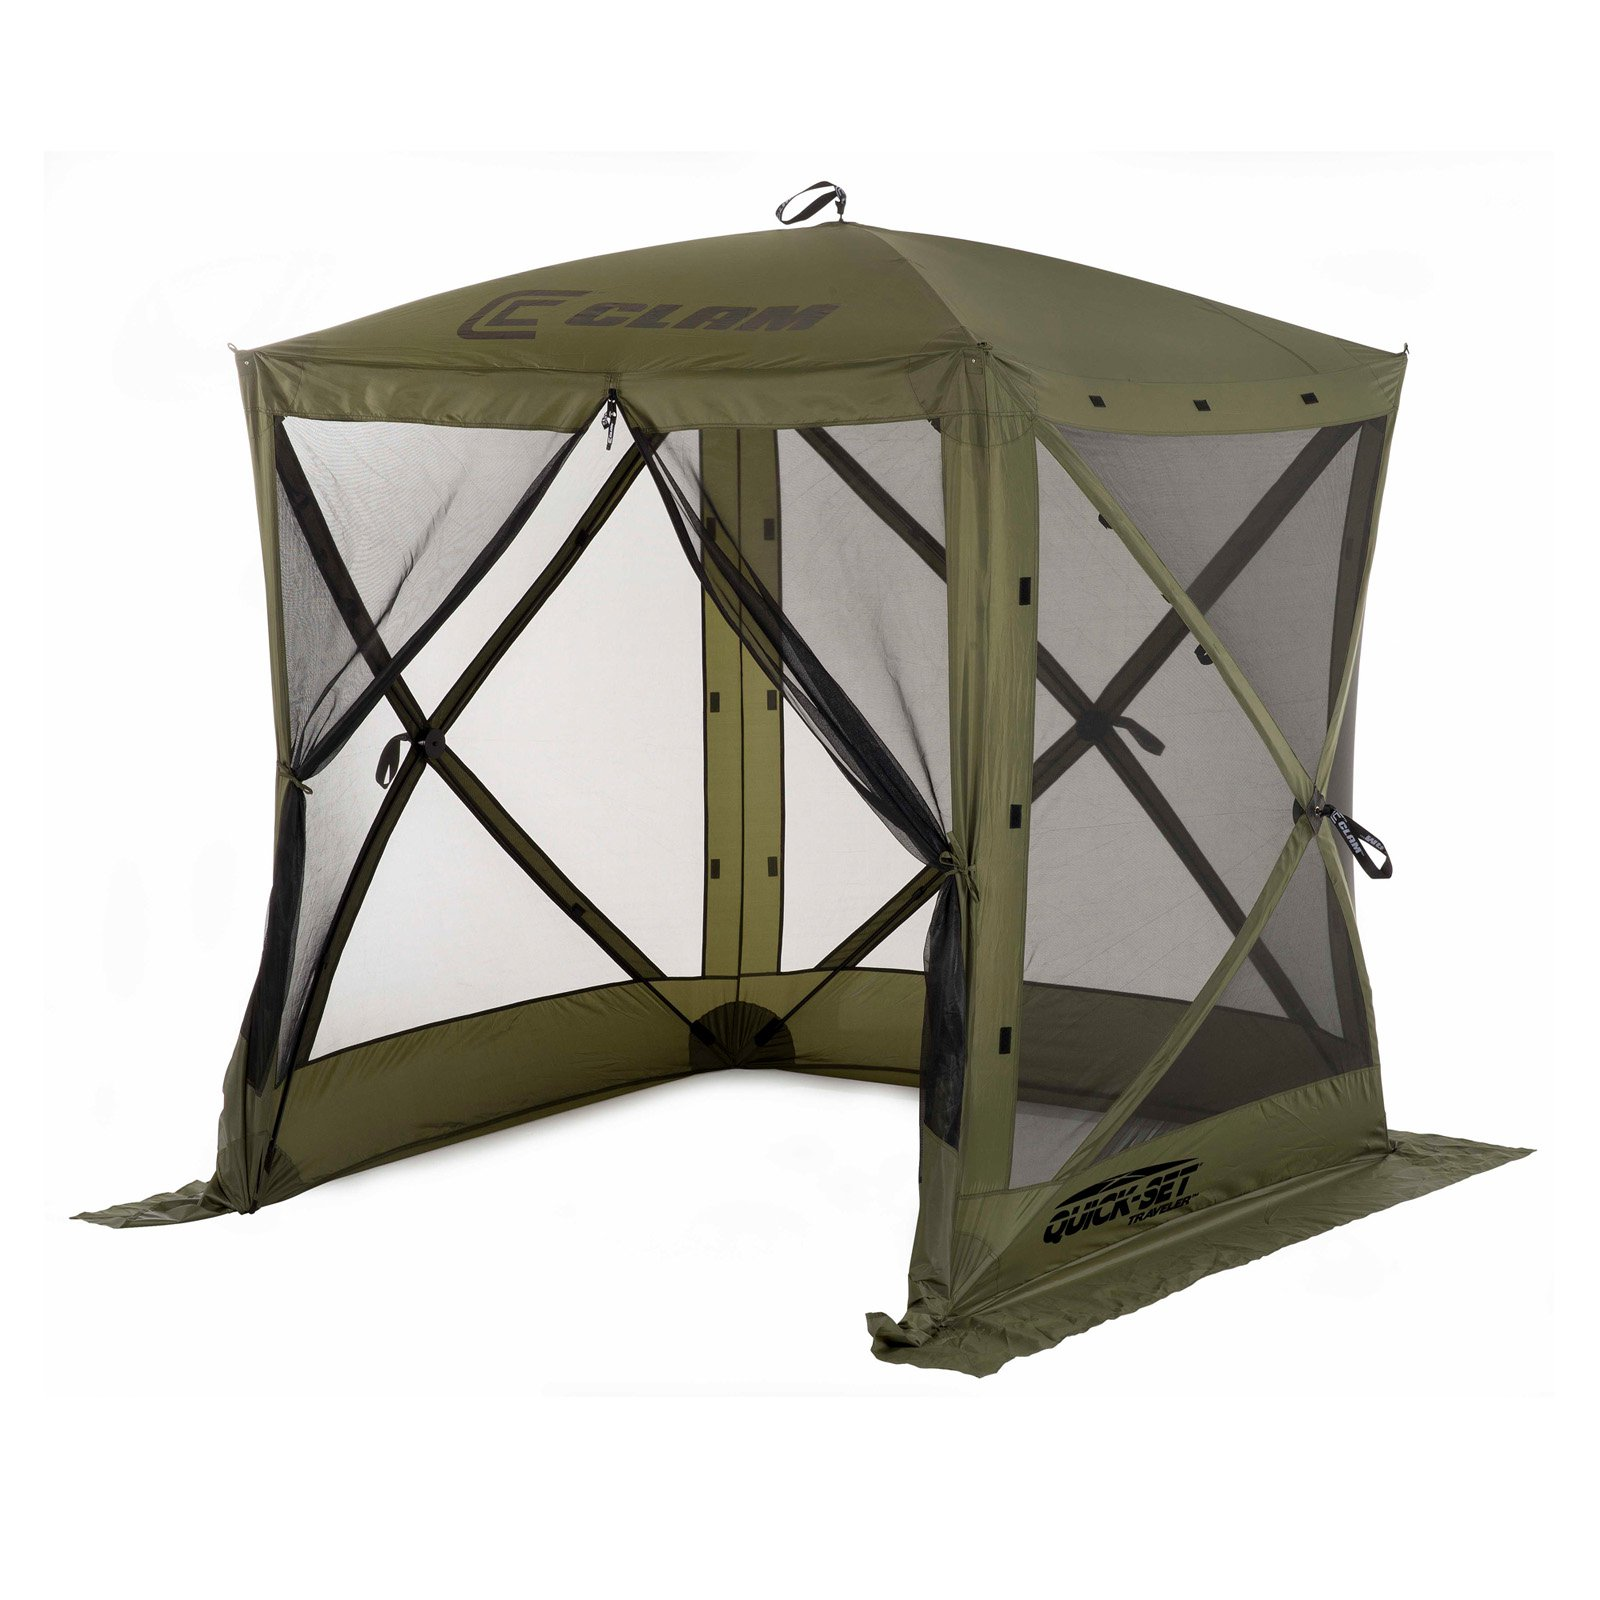 Clam 6 x 6 ft. Quick-Set Traveler Canopy Shelter